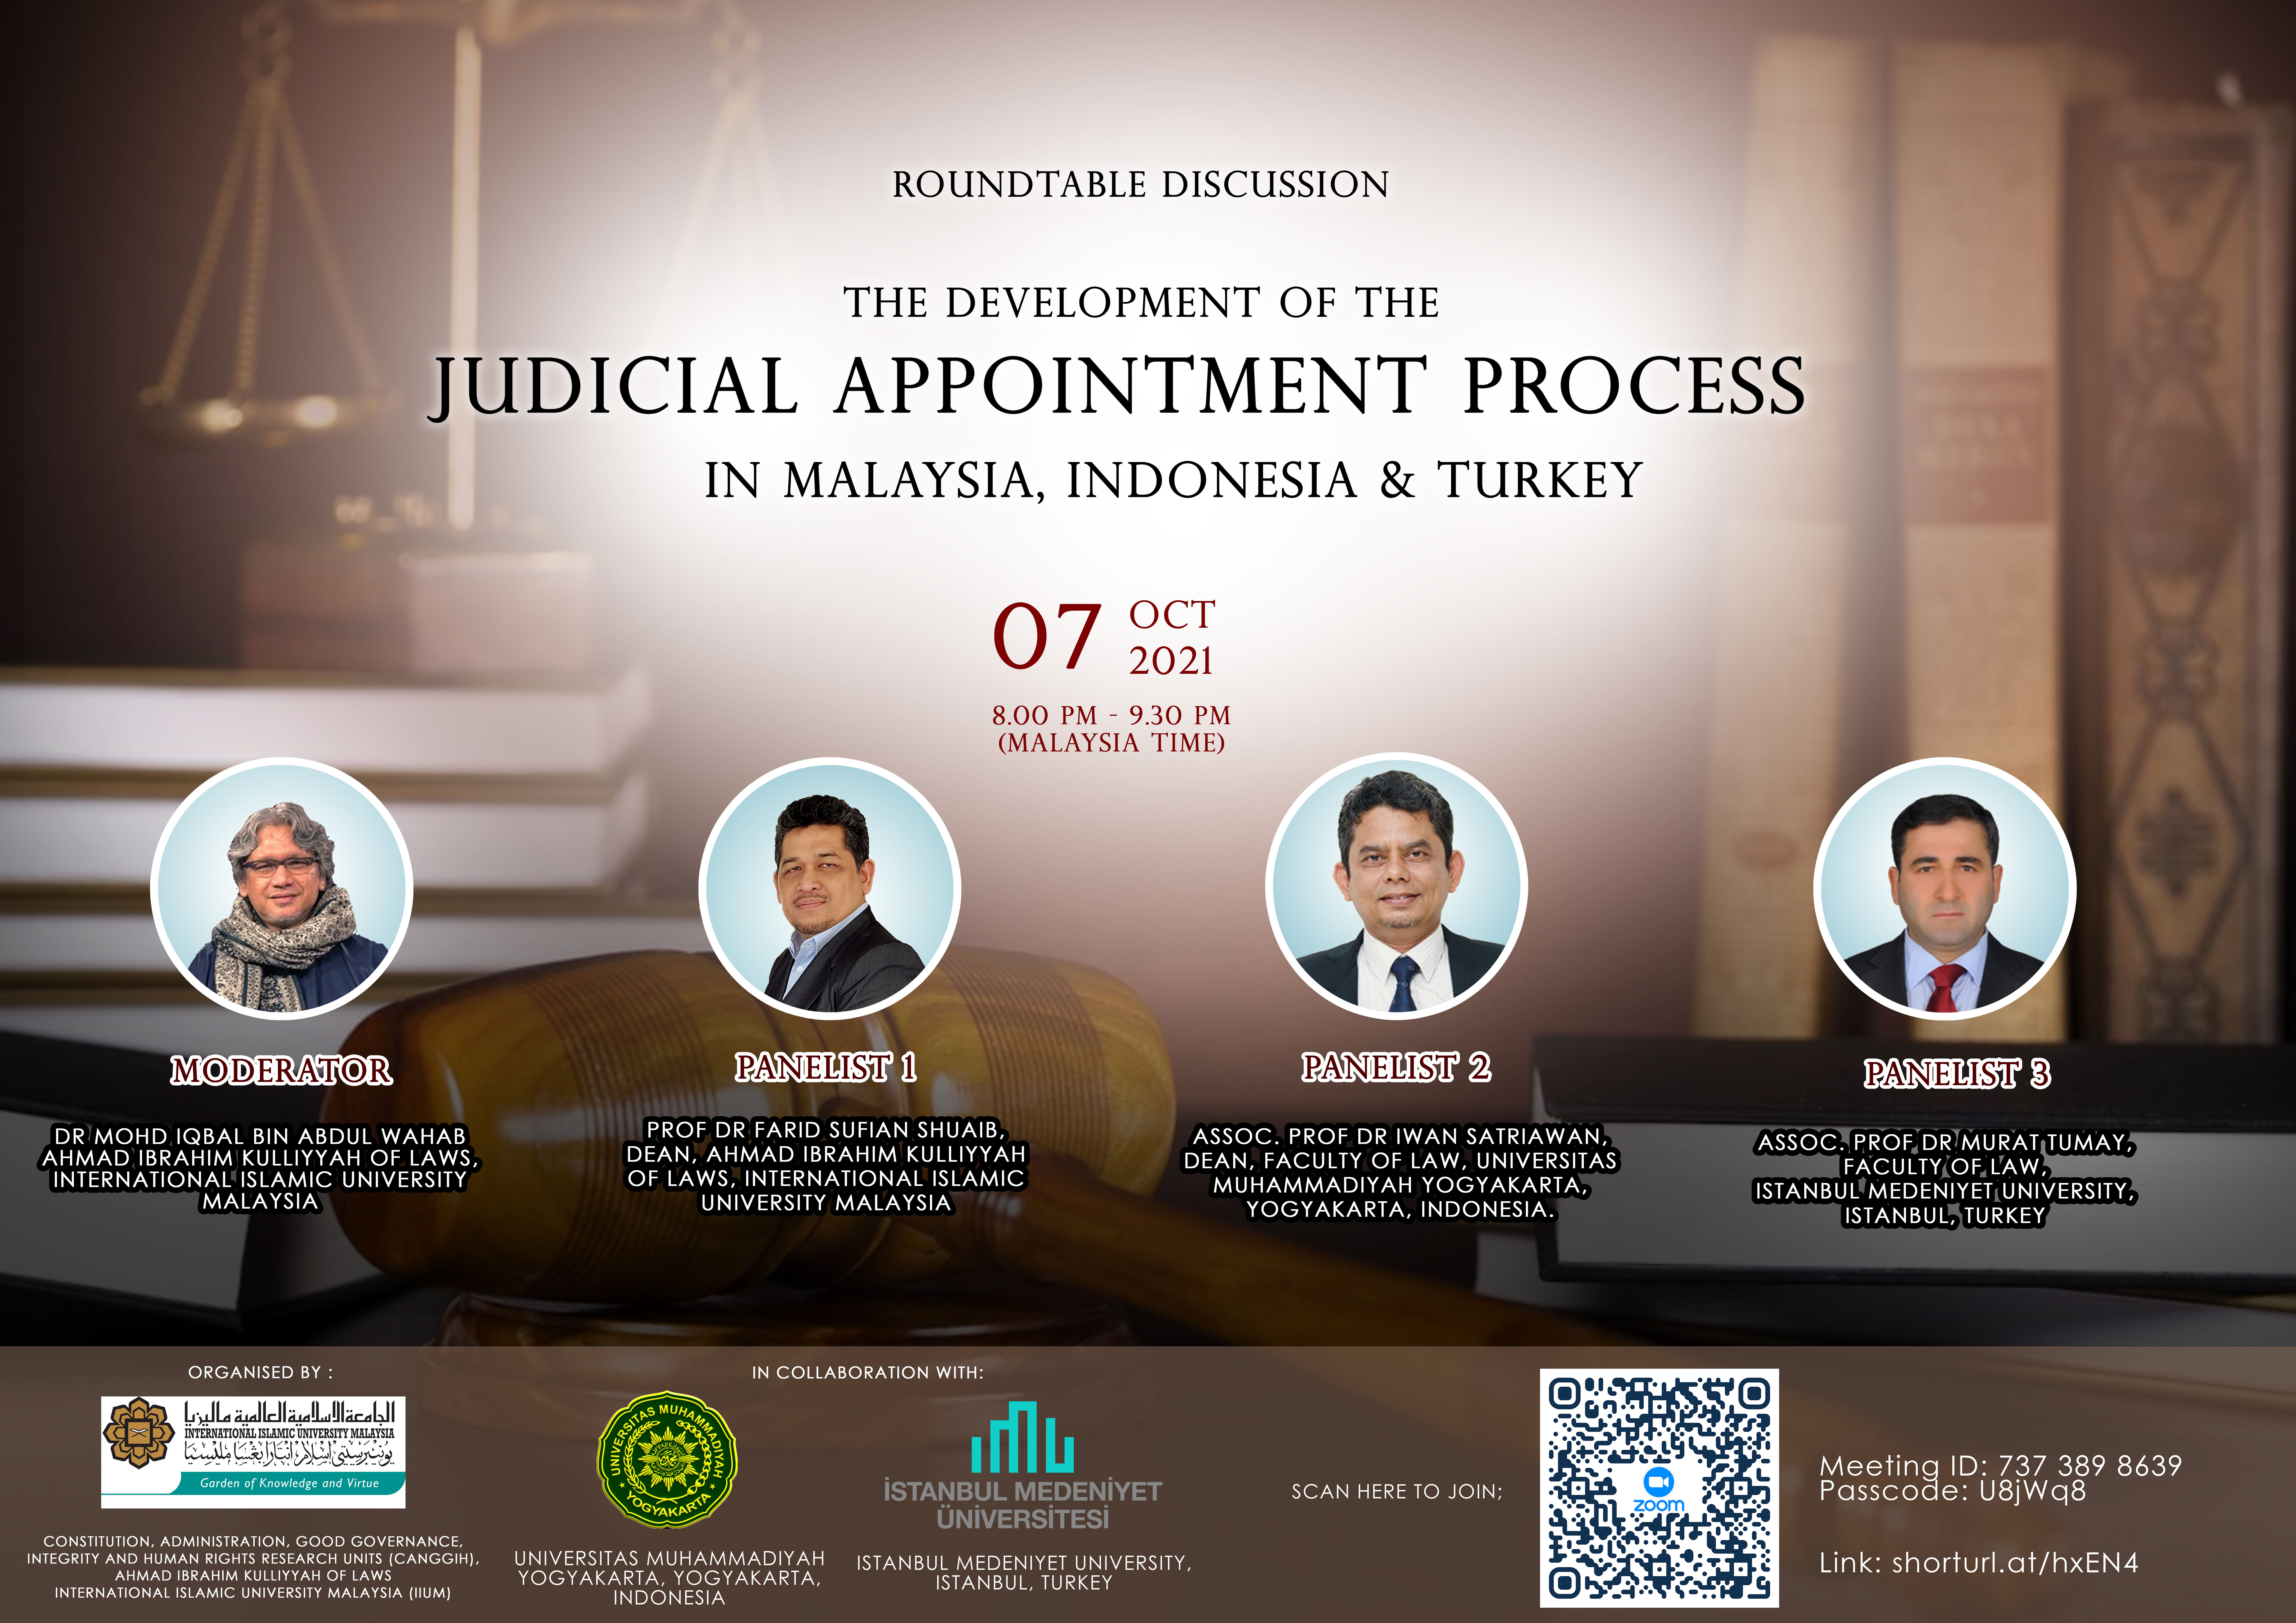 ROUNDTABLE DISCUSSION: THE DEVELOPMENT OF THE JUDICIAL APPOINTMENT PROCESS IN MALAYSIA, INDONESIA & TURKEY